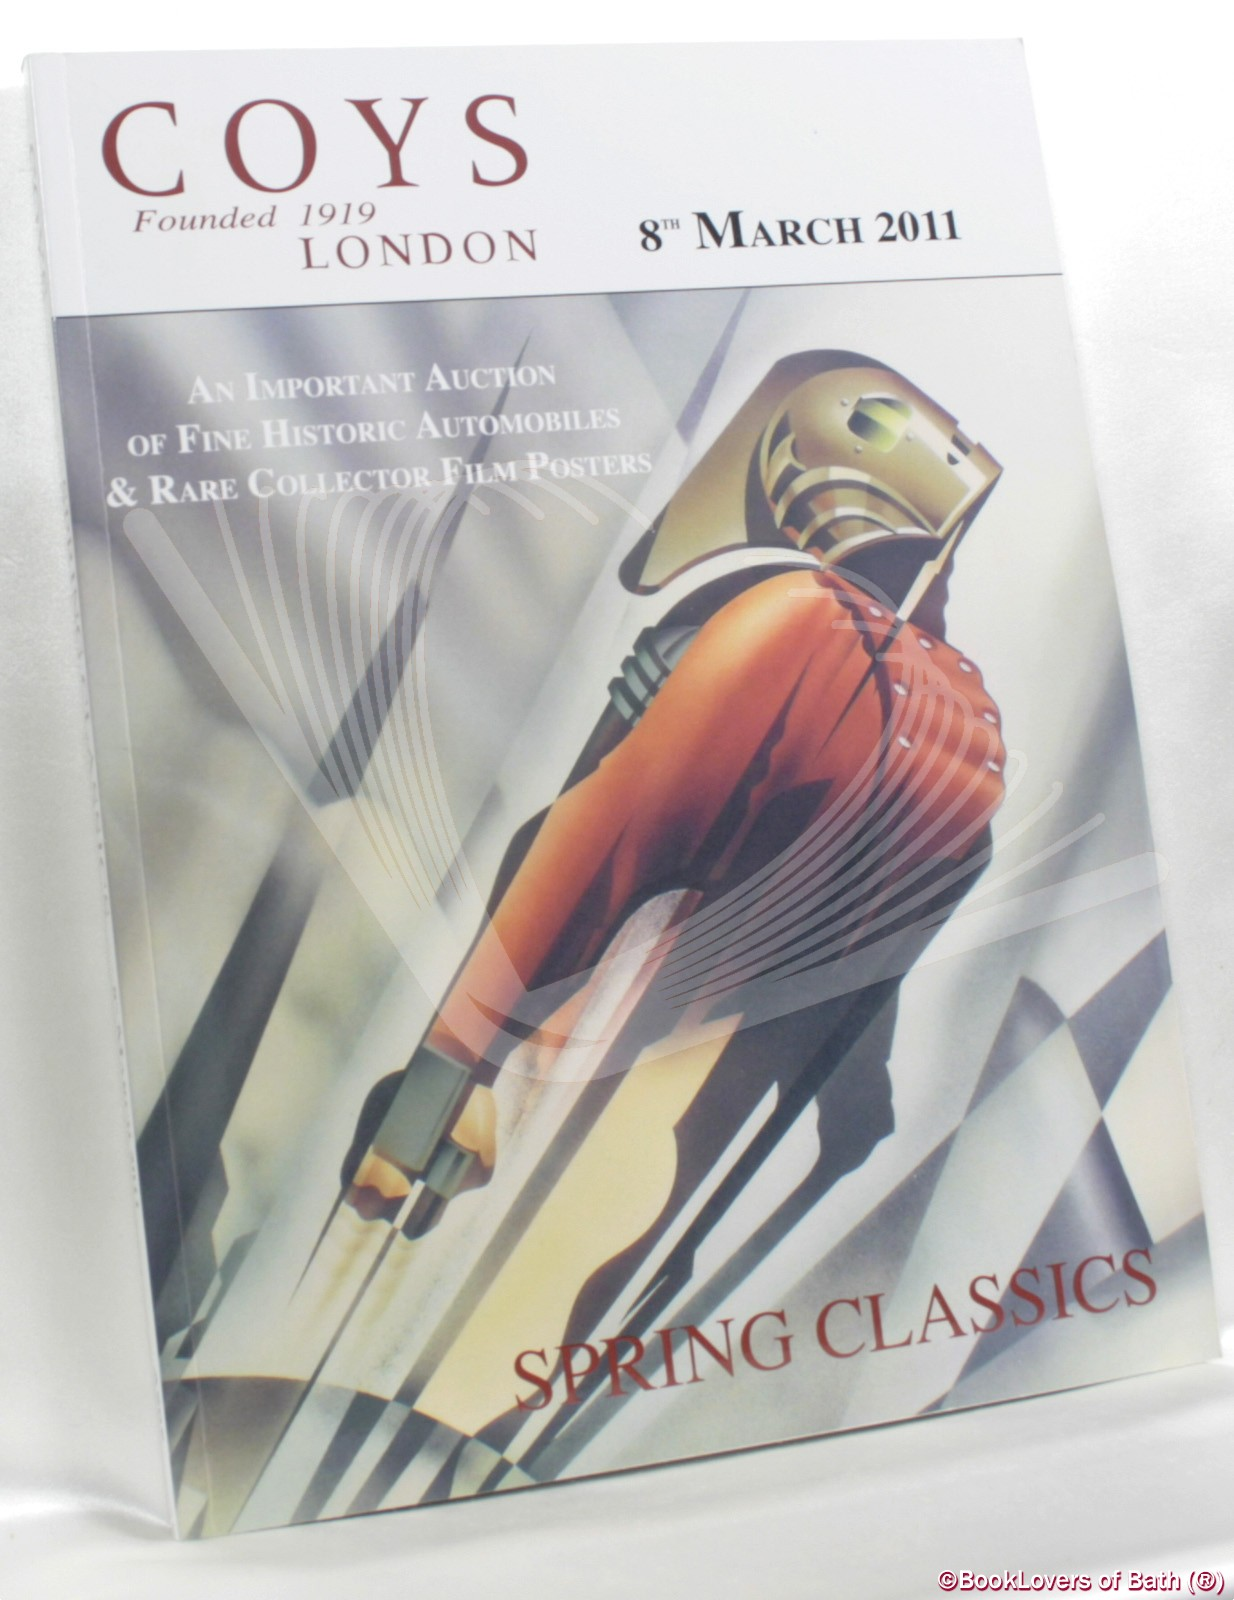 Spring Classics: An Important Auction of Fine Historic Automobiles, & Rare Collector Film Posters 8th March 2011 At the Royal Horticultural Halls, London - Anon.